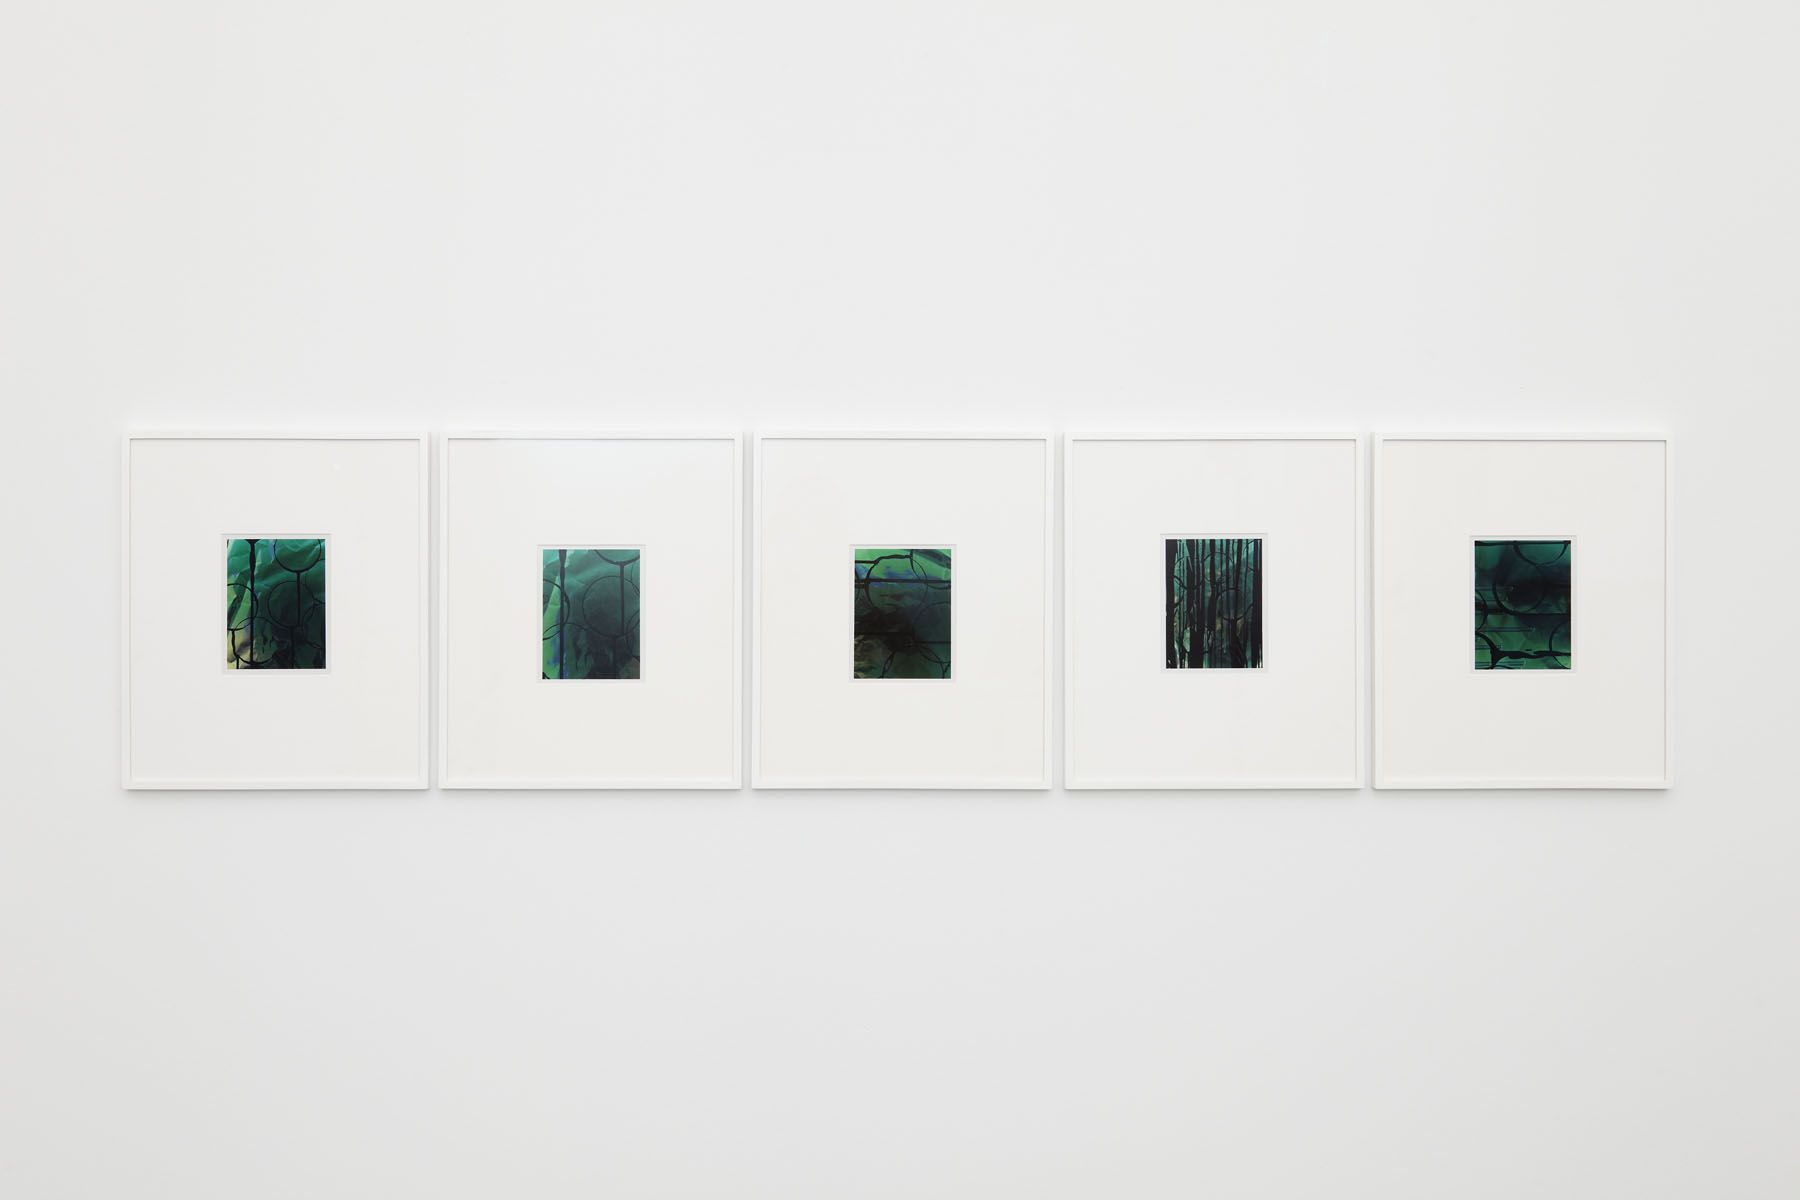 green abstract photograph series by contemporary artist anthony pearson